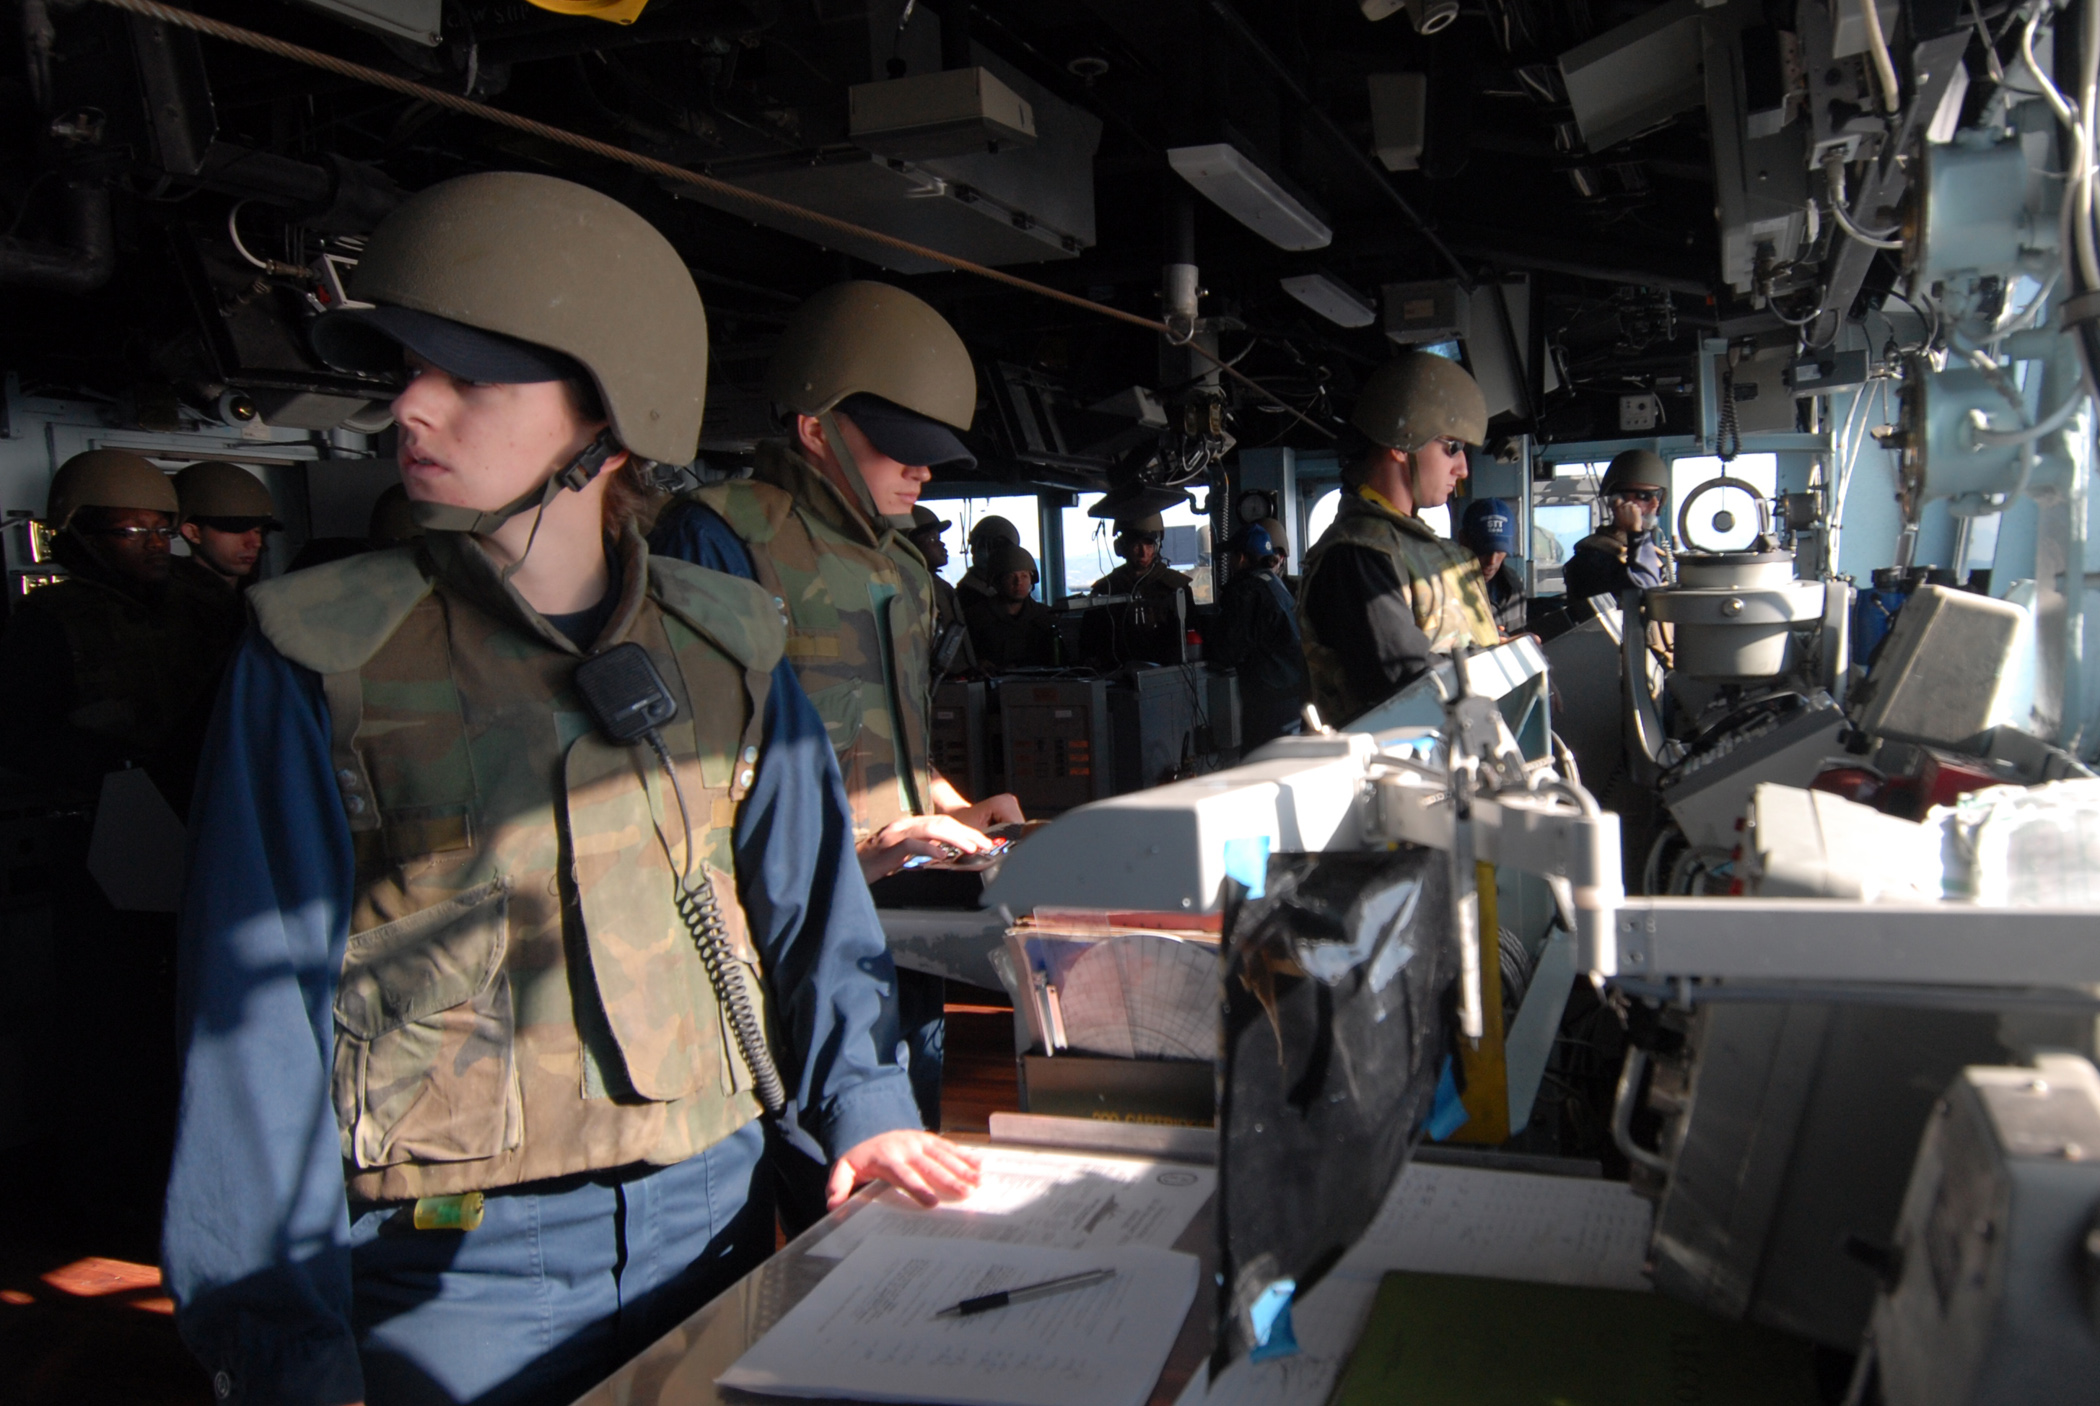 File:US Navy 111128-N-DU438-210 Officers stand watch in the ship's ...